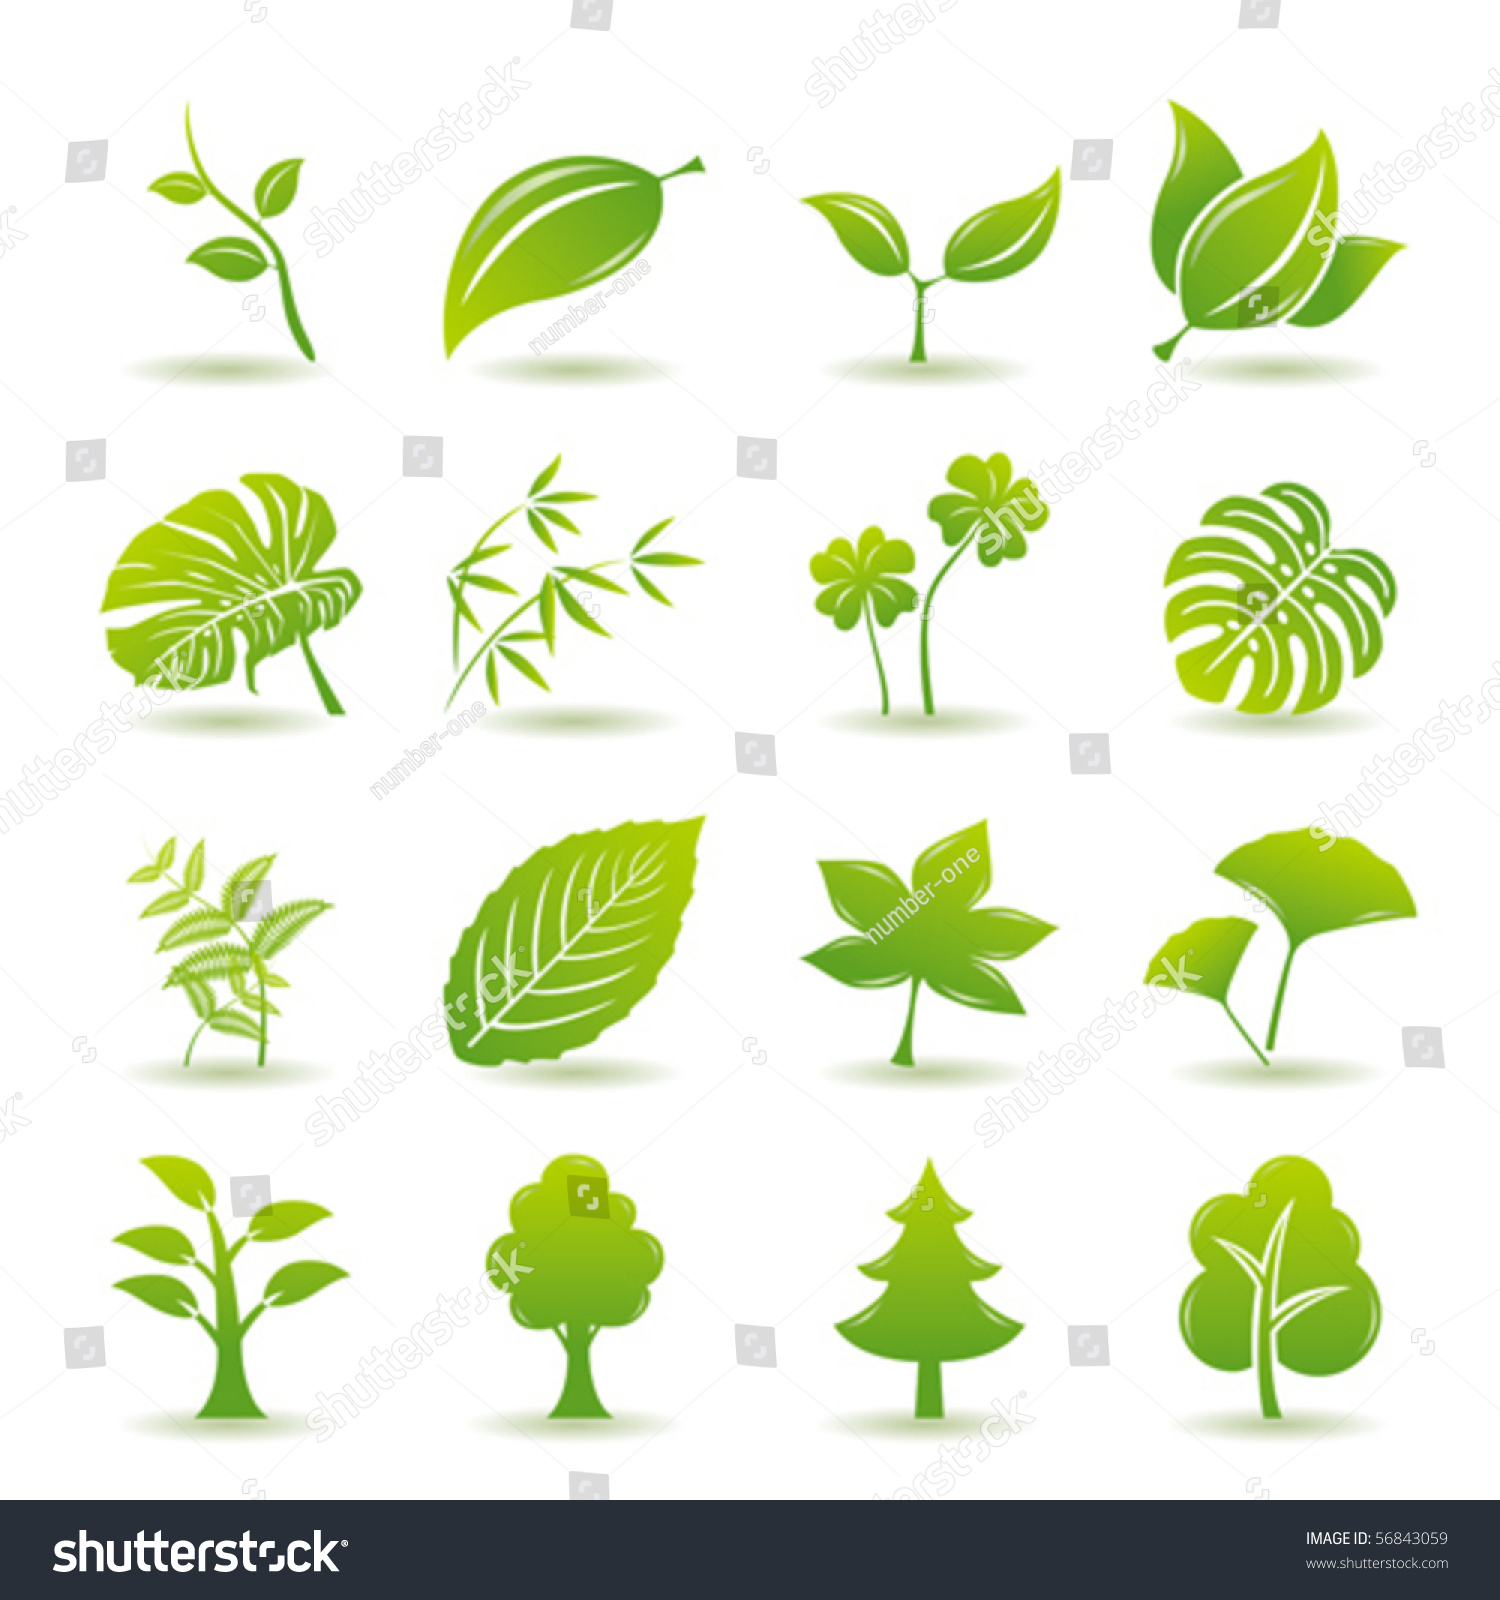 Nature Ecology: Green Leaf Icons Set Nature Ecology Stock Vector 56843059